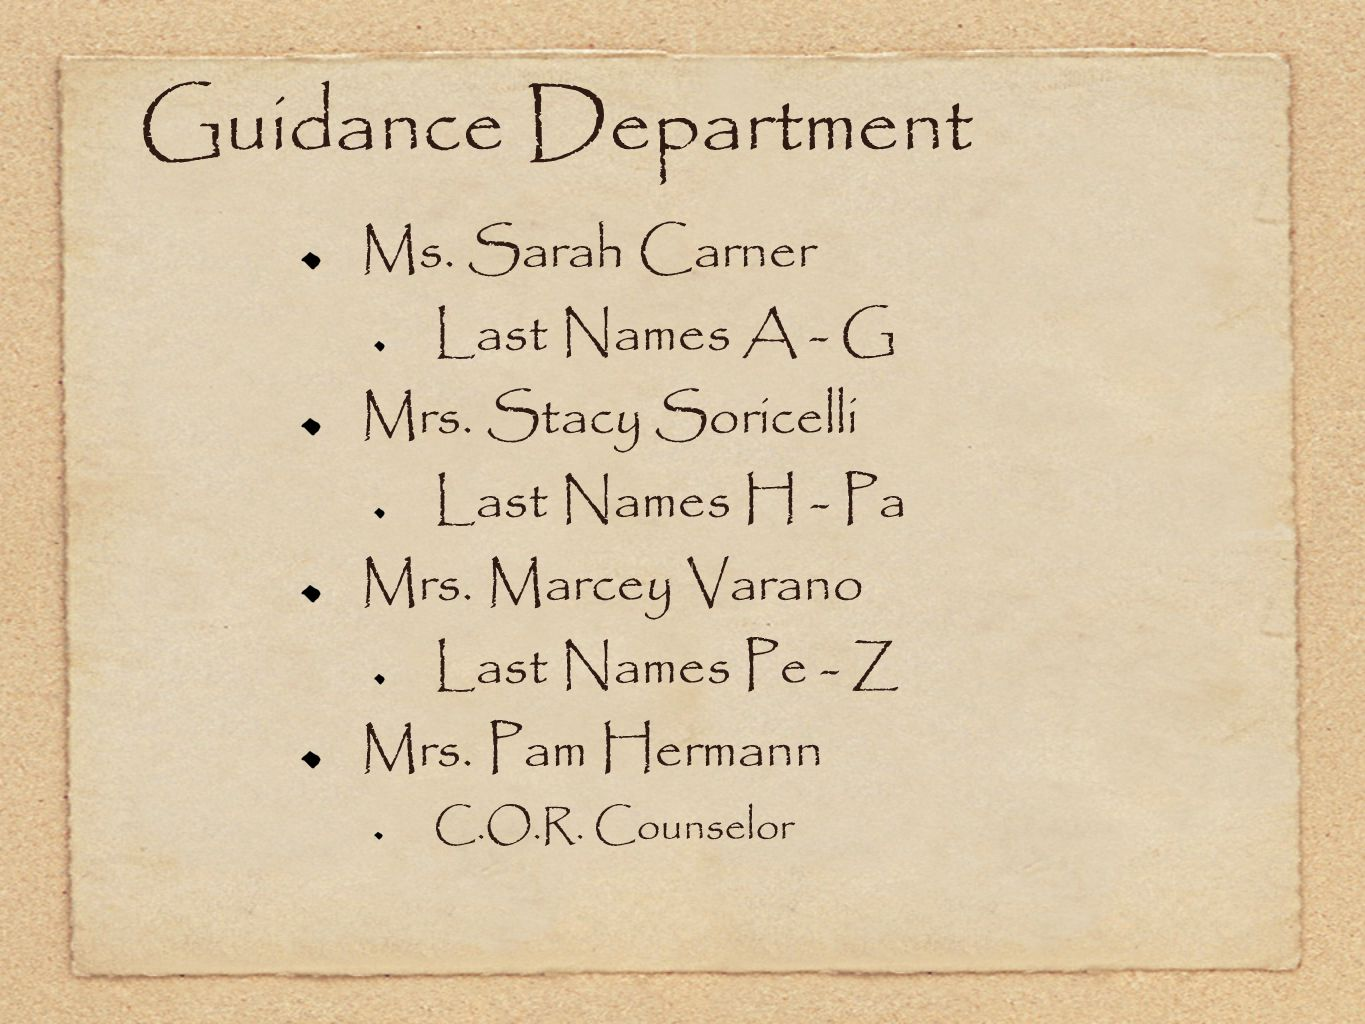 Guidance Department Ms. Sarah Carner Last Names A - G